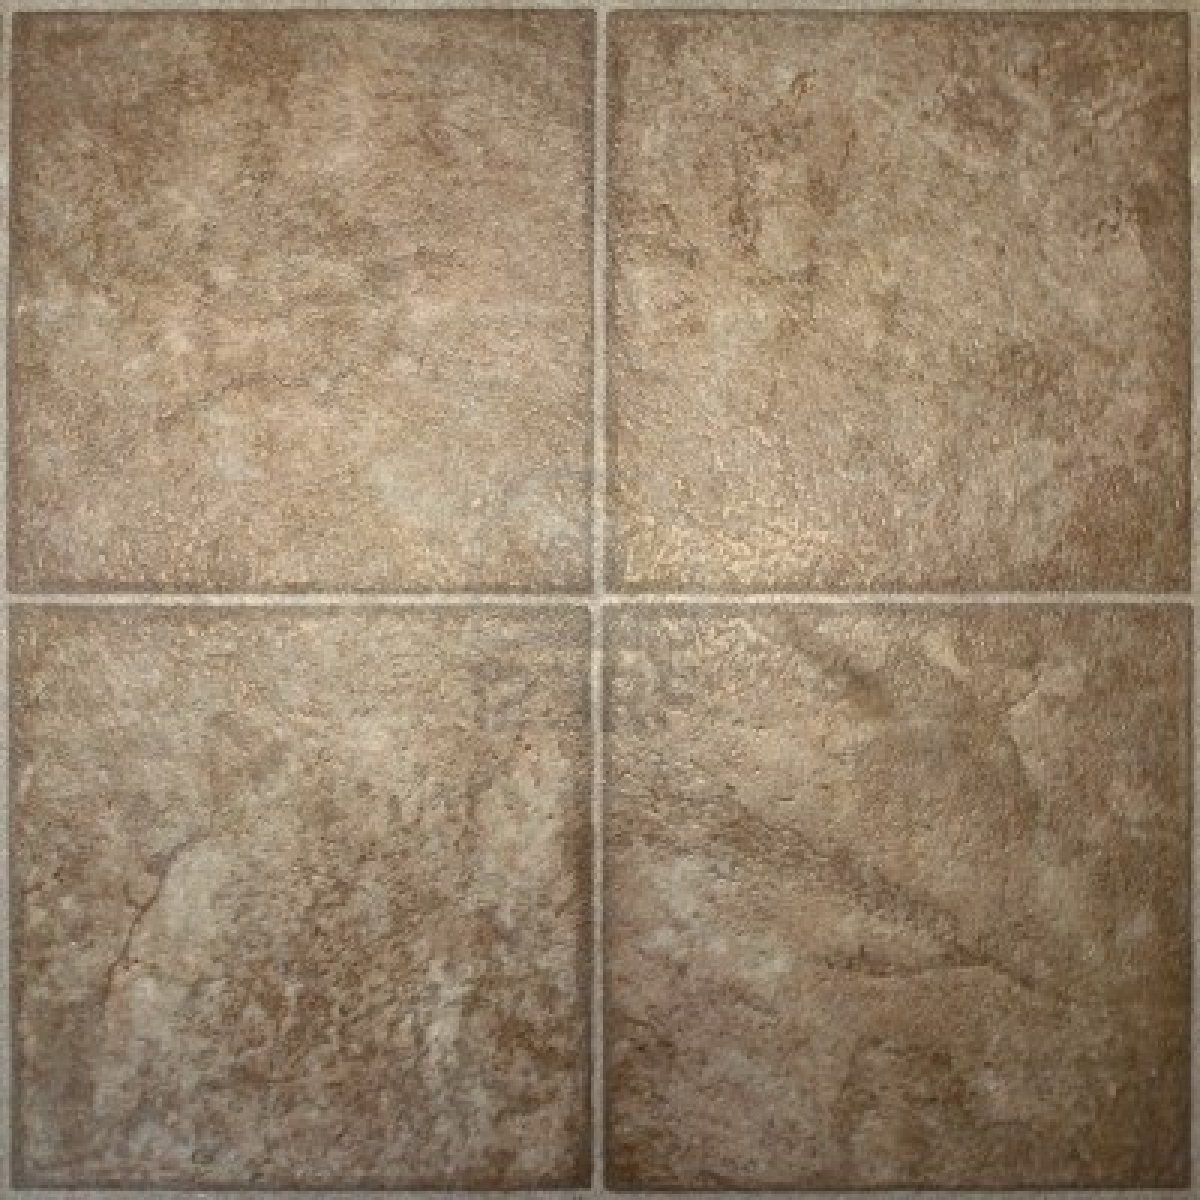 Tile Floor Texture Images Tile Flooring Design Ideas